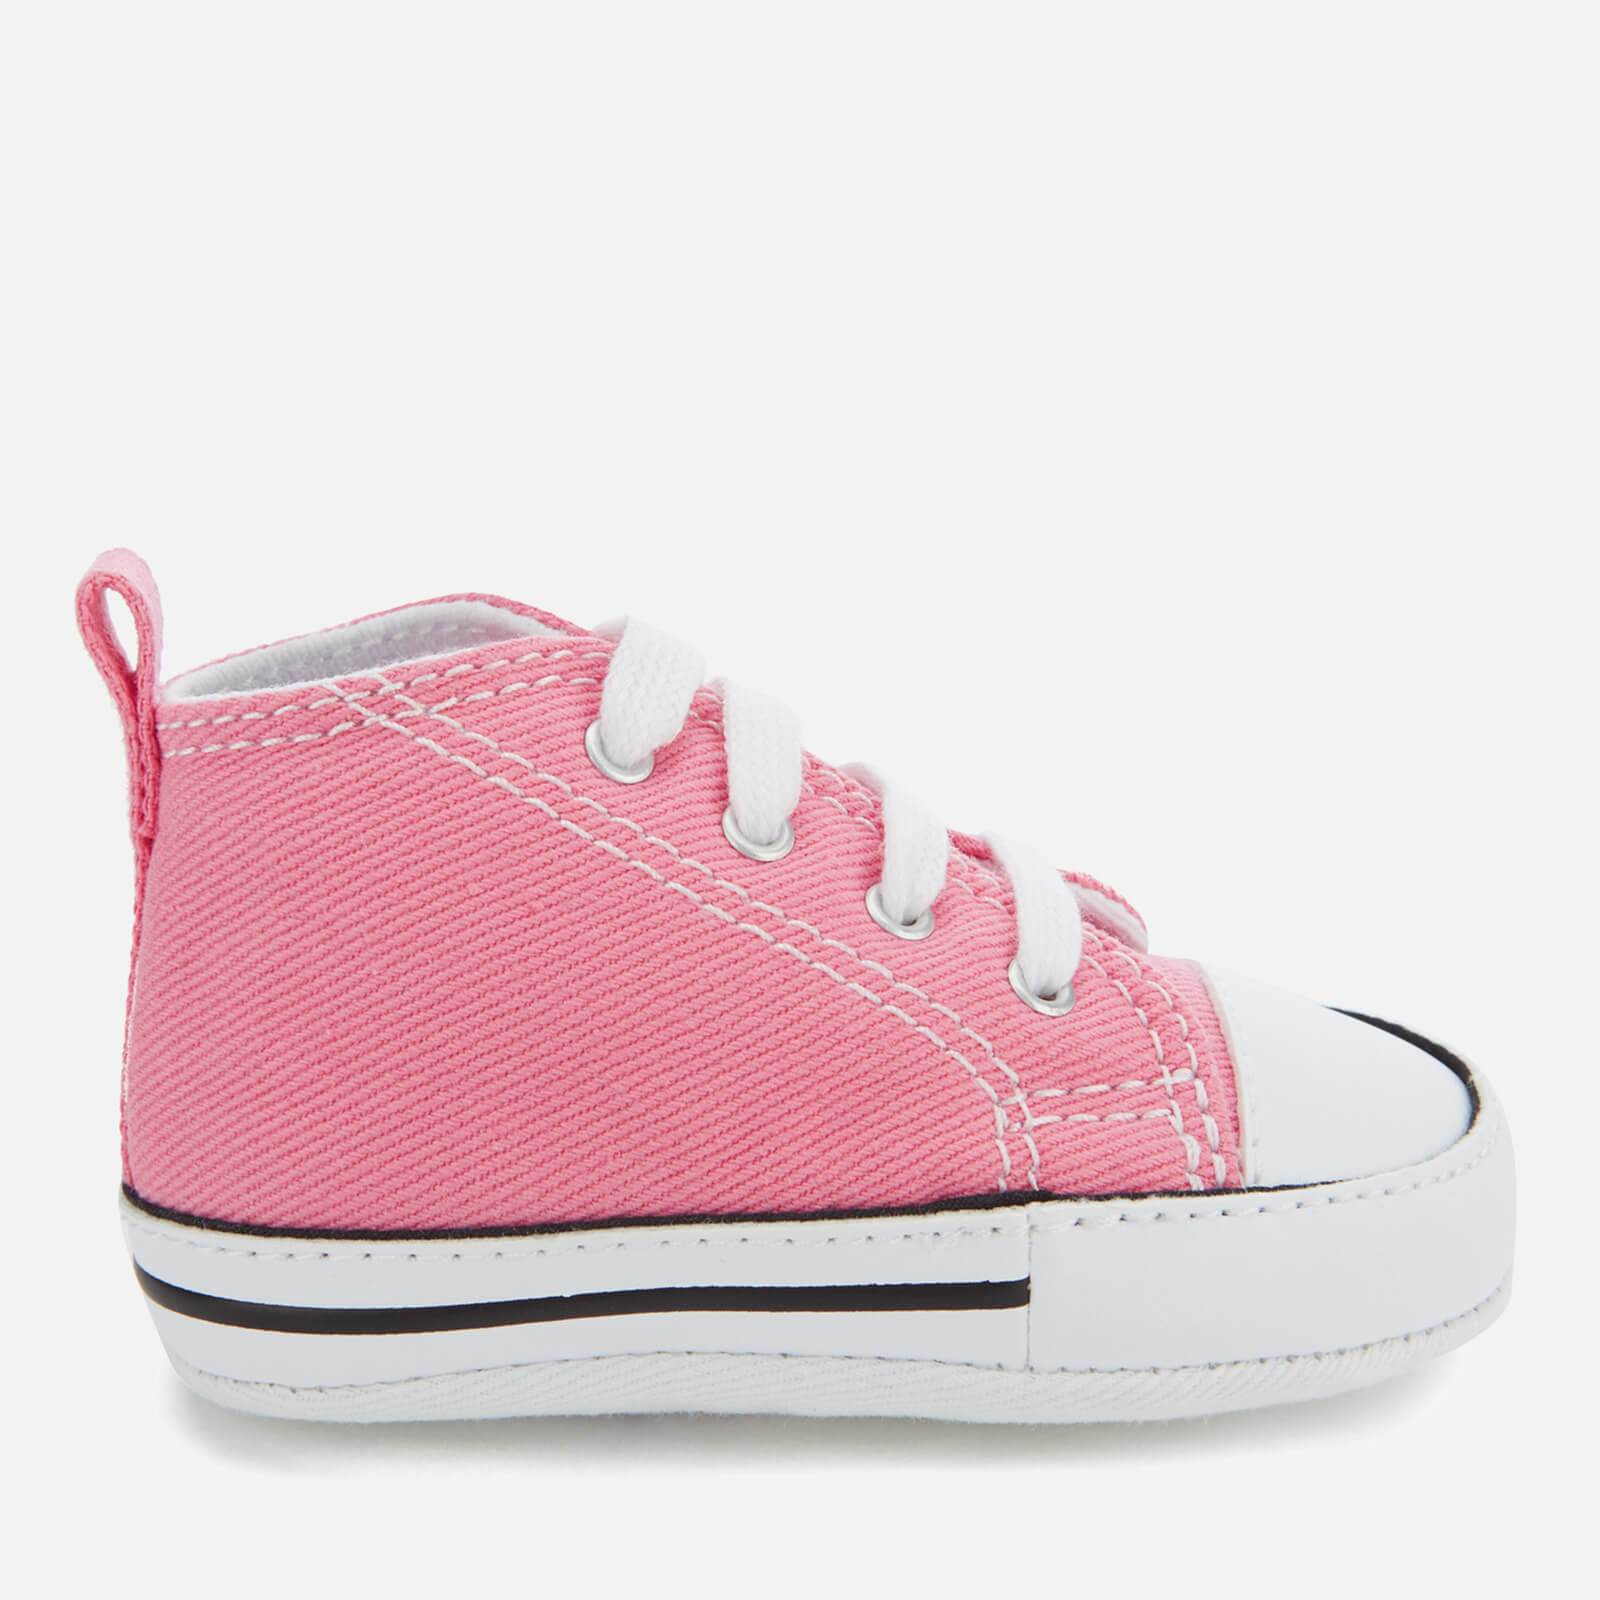 Converse Babies Chuck Taylor First Star Hi-Top Trainers - Pink - UK 4 Baby